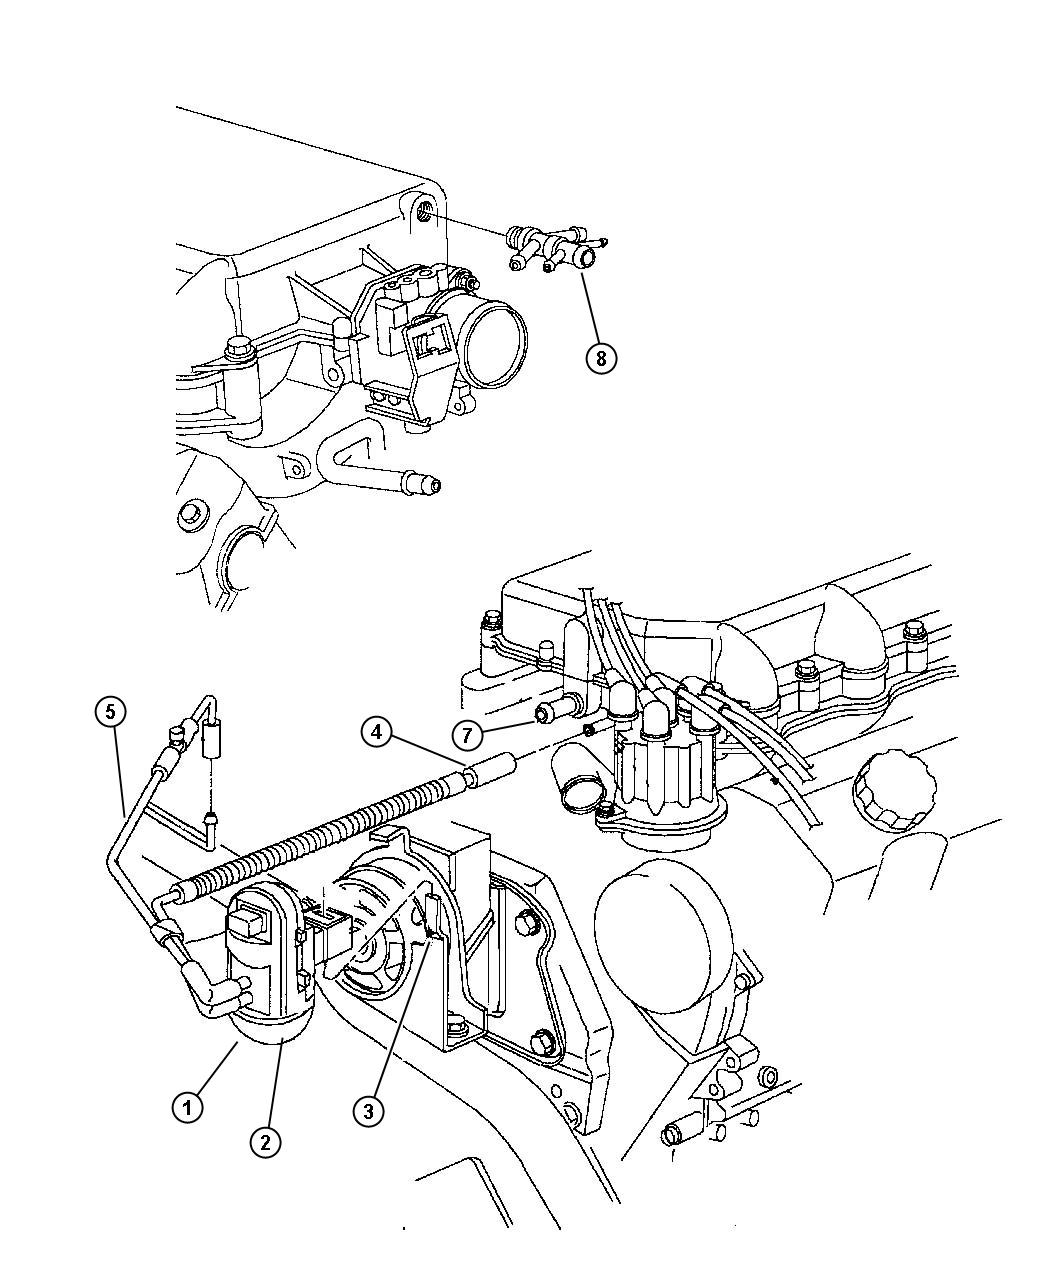 Ford F 150 Exhaust System Diagram E5813093dbb881e8 together with Fuel System Diagram together with 88 Crown Victoria 5 0l Engine Diagram in addition 2pn84 1999 Dodge Dakota 4xr4 Automatic Wd Replaced Heather moreover 7de5o Gm Astro Question Routing Power Steering Lines. on 93 dodge caravan vacuum lines